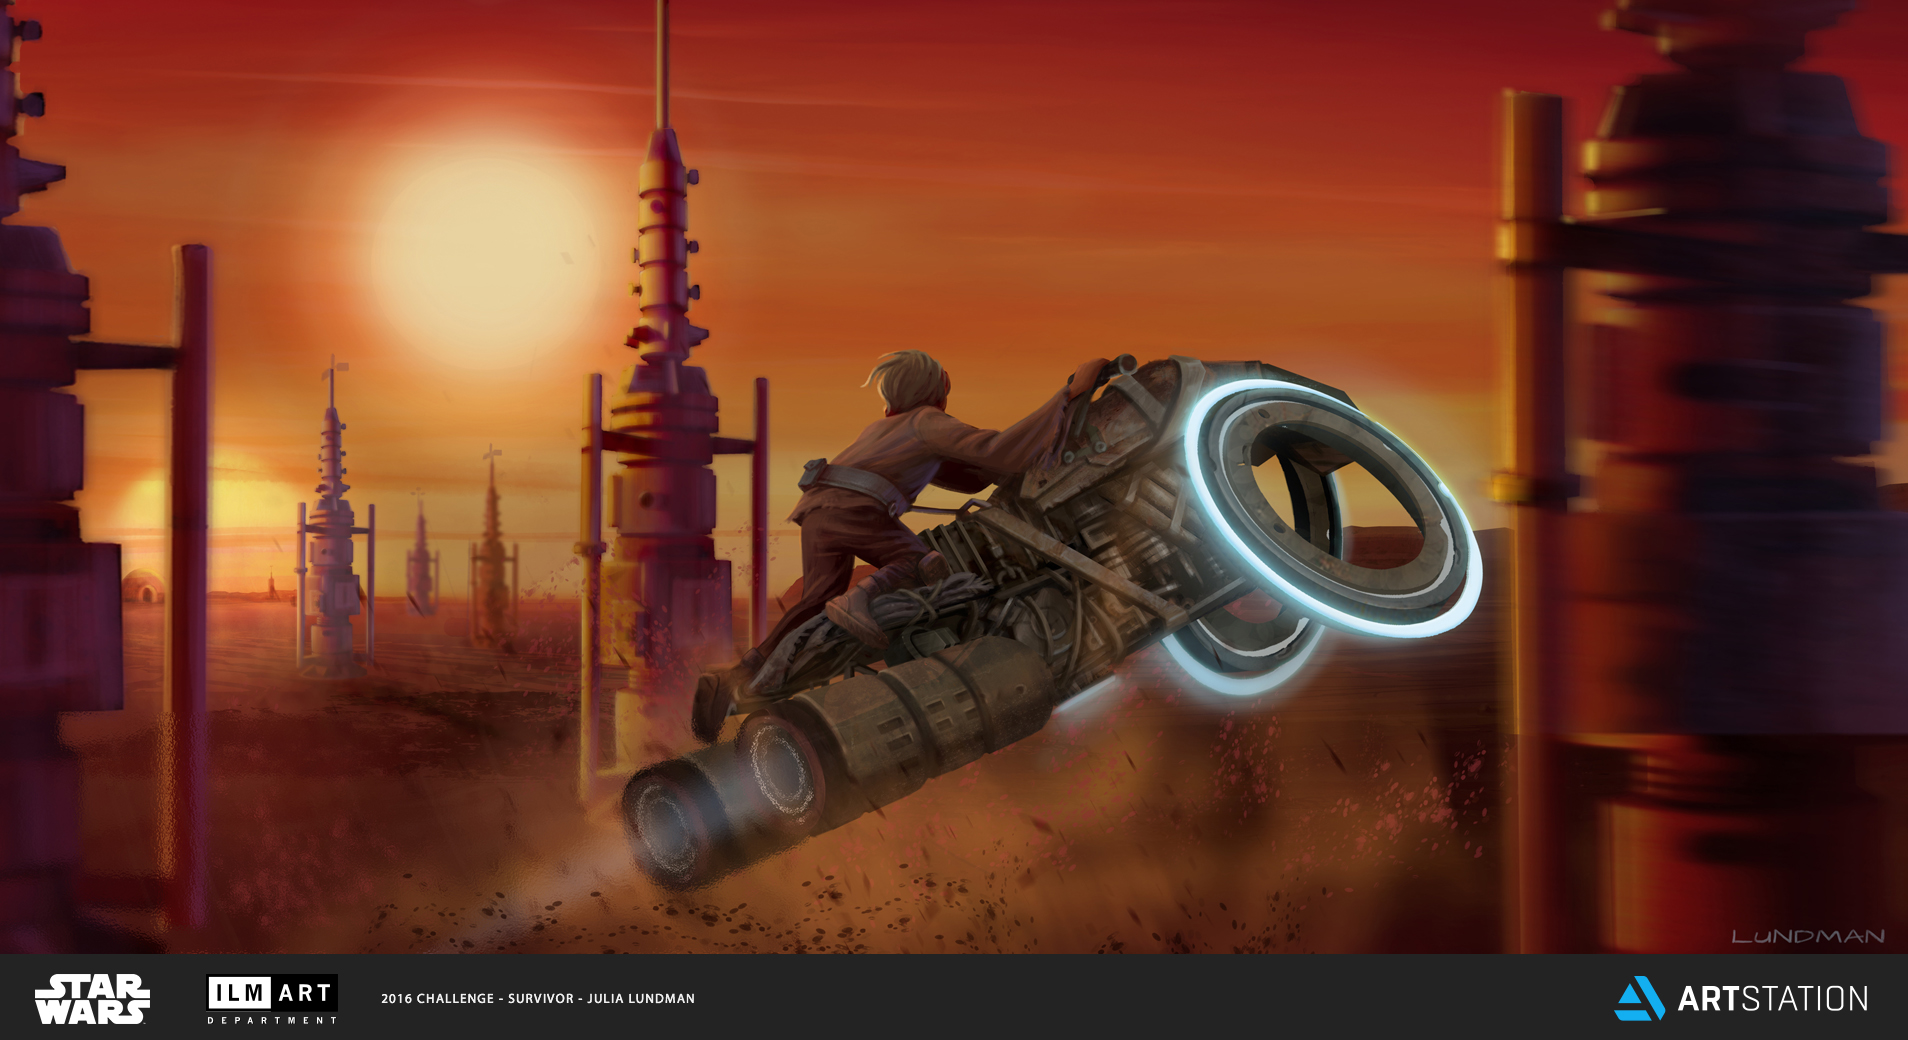 KEYFRAME 3: WHEN LUKE SKYWALKER WAS TWELVE, HE BUILT A CUSTOM MADE SPEEDER BIKE OUT OF SPARE FARM PARTS AND OLD MINING EQUIPMENT HE FOUND IN THE DESERT, STRAPPING IT ALL TOGETHER AS BEST HE COULD. AT SUNSET AFTER A HARD DAY'S WORK ON THE FARM, HE WOULD OFTEN RACE THROUGH FIELDS OF MOISTURE VAPORATORS, MUCH TO AUNT BERU'S CONCERN.